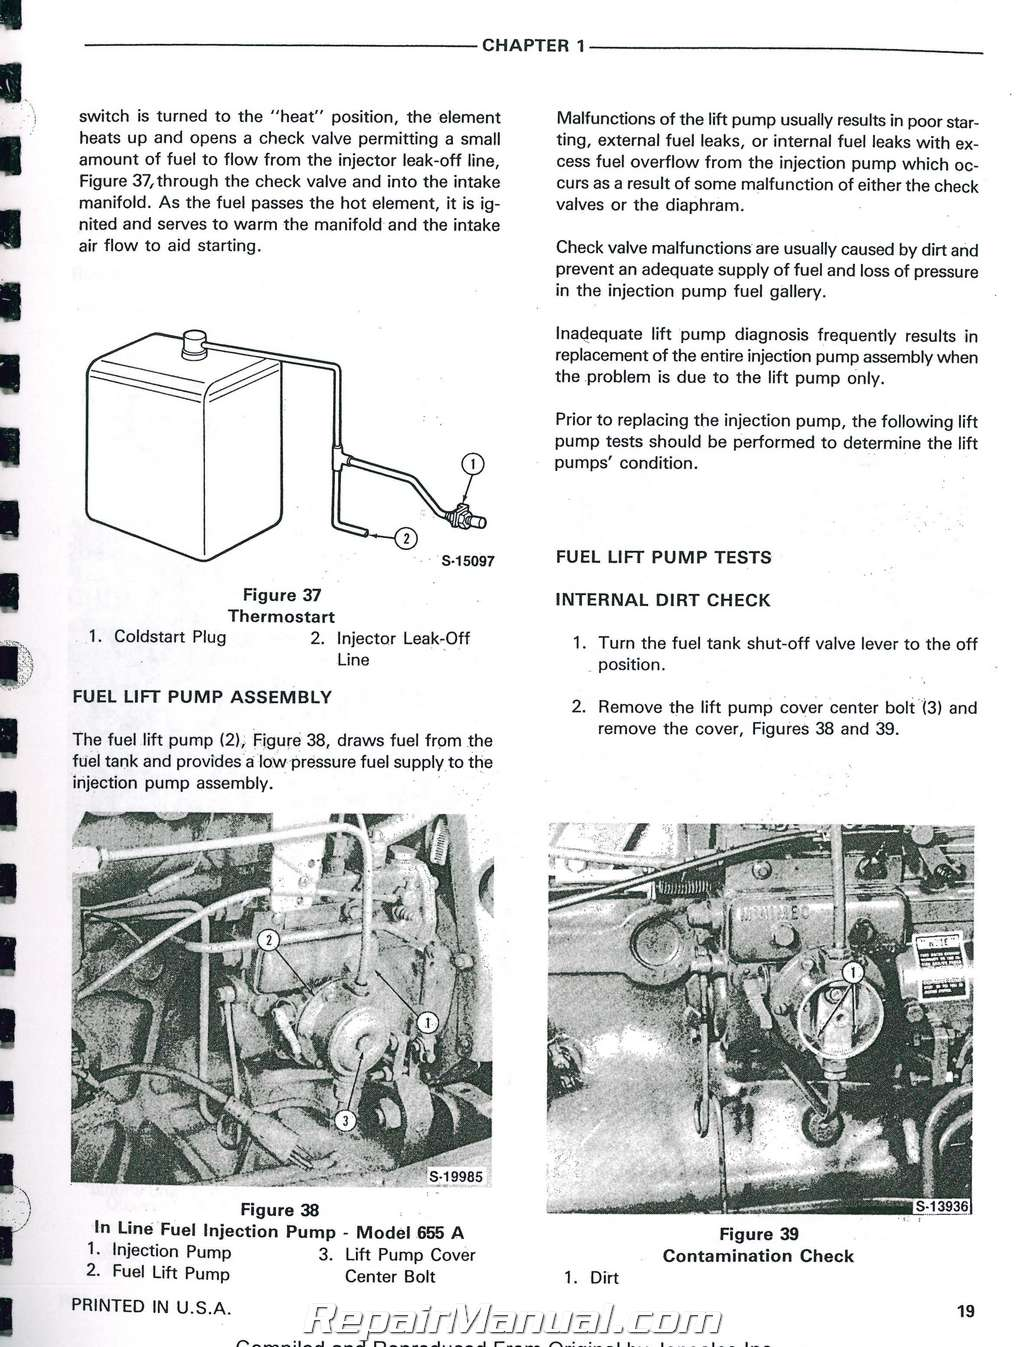 hight resolution of ford 555a 555b 655a tractor loader backhoe printed service manual rh repairmanual com wiring diagram